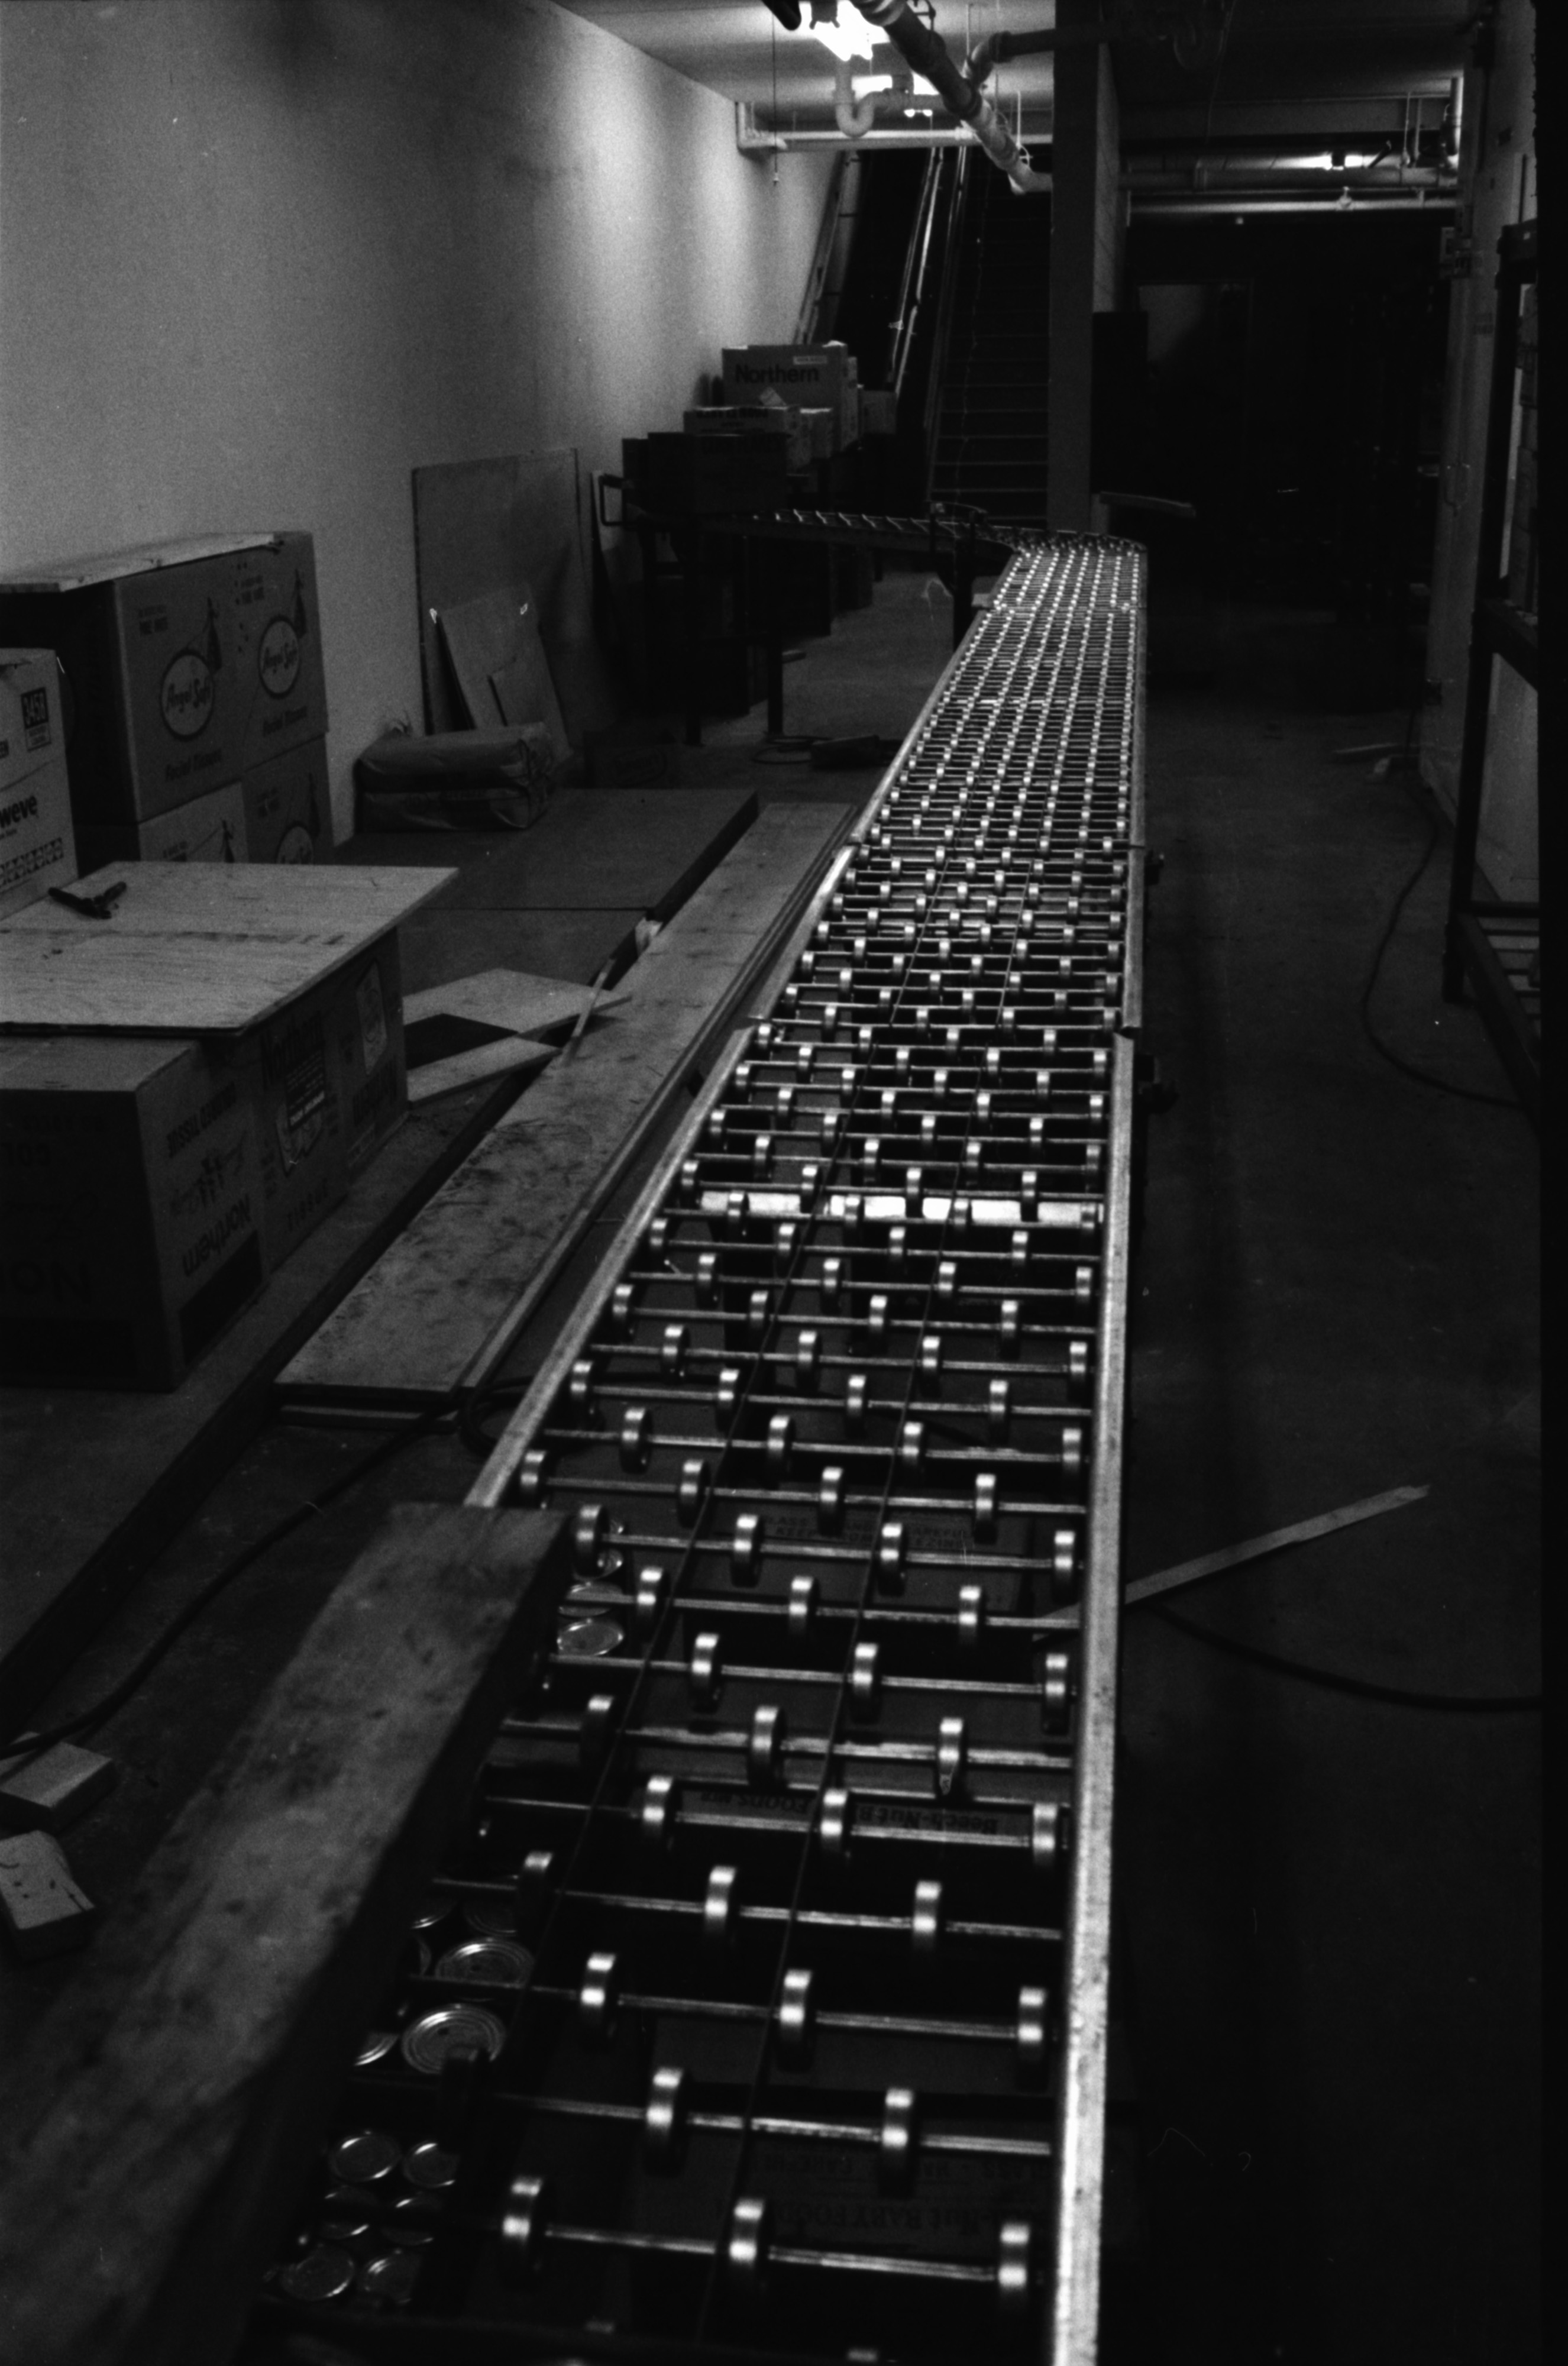 Conveyor Belt In Basement Of New A & P Supermarket, May 1959	 image